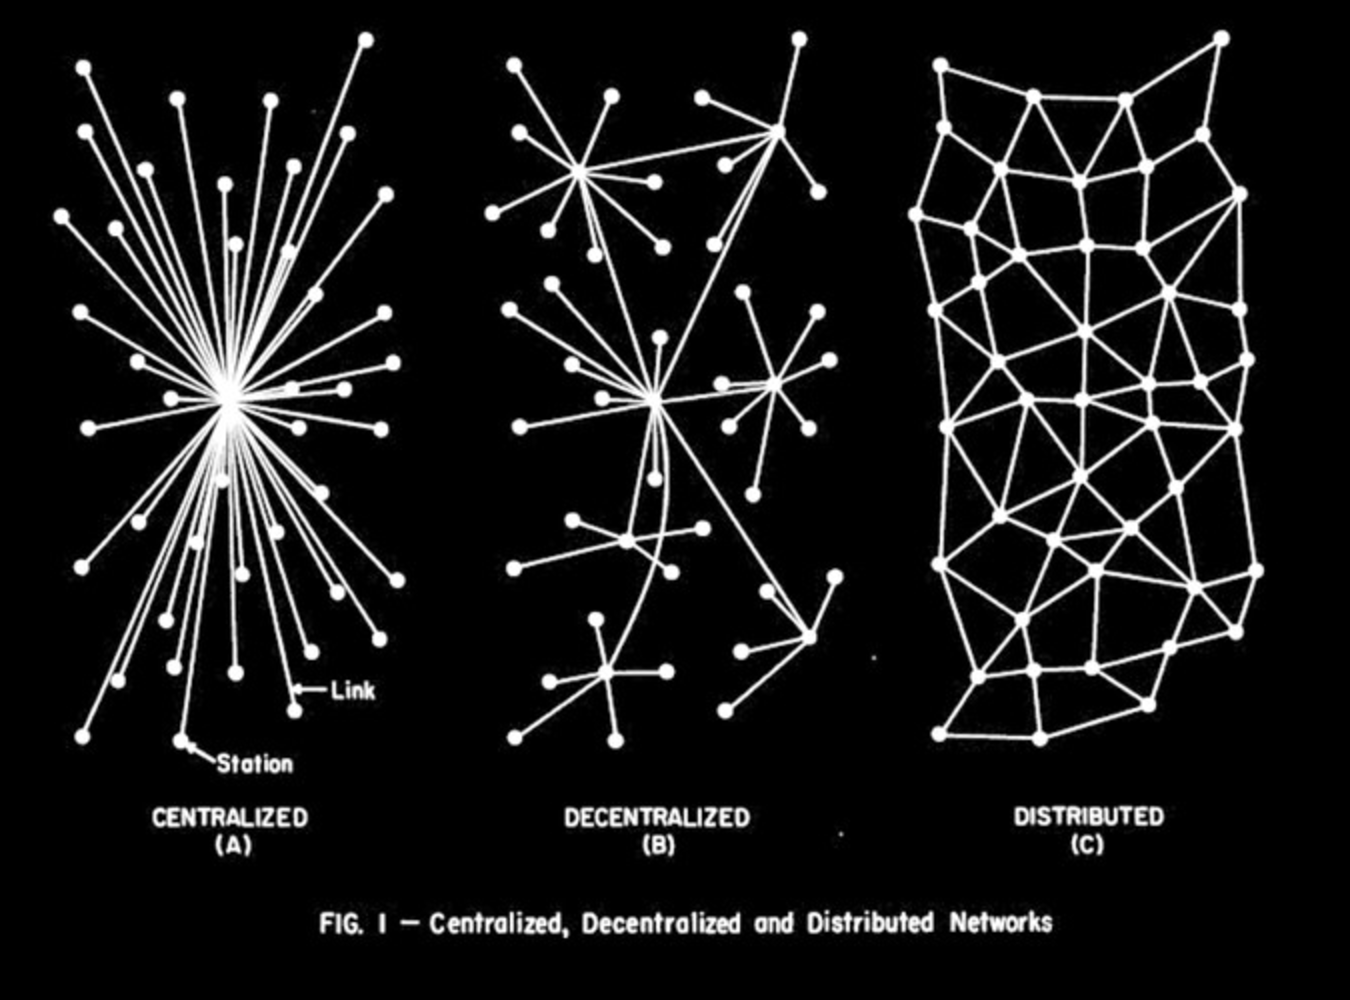 difference between centralized, decentralized and distributed systems